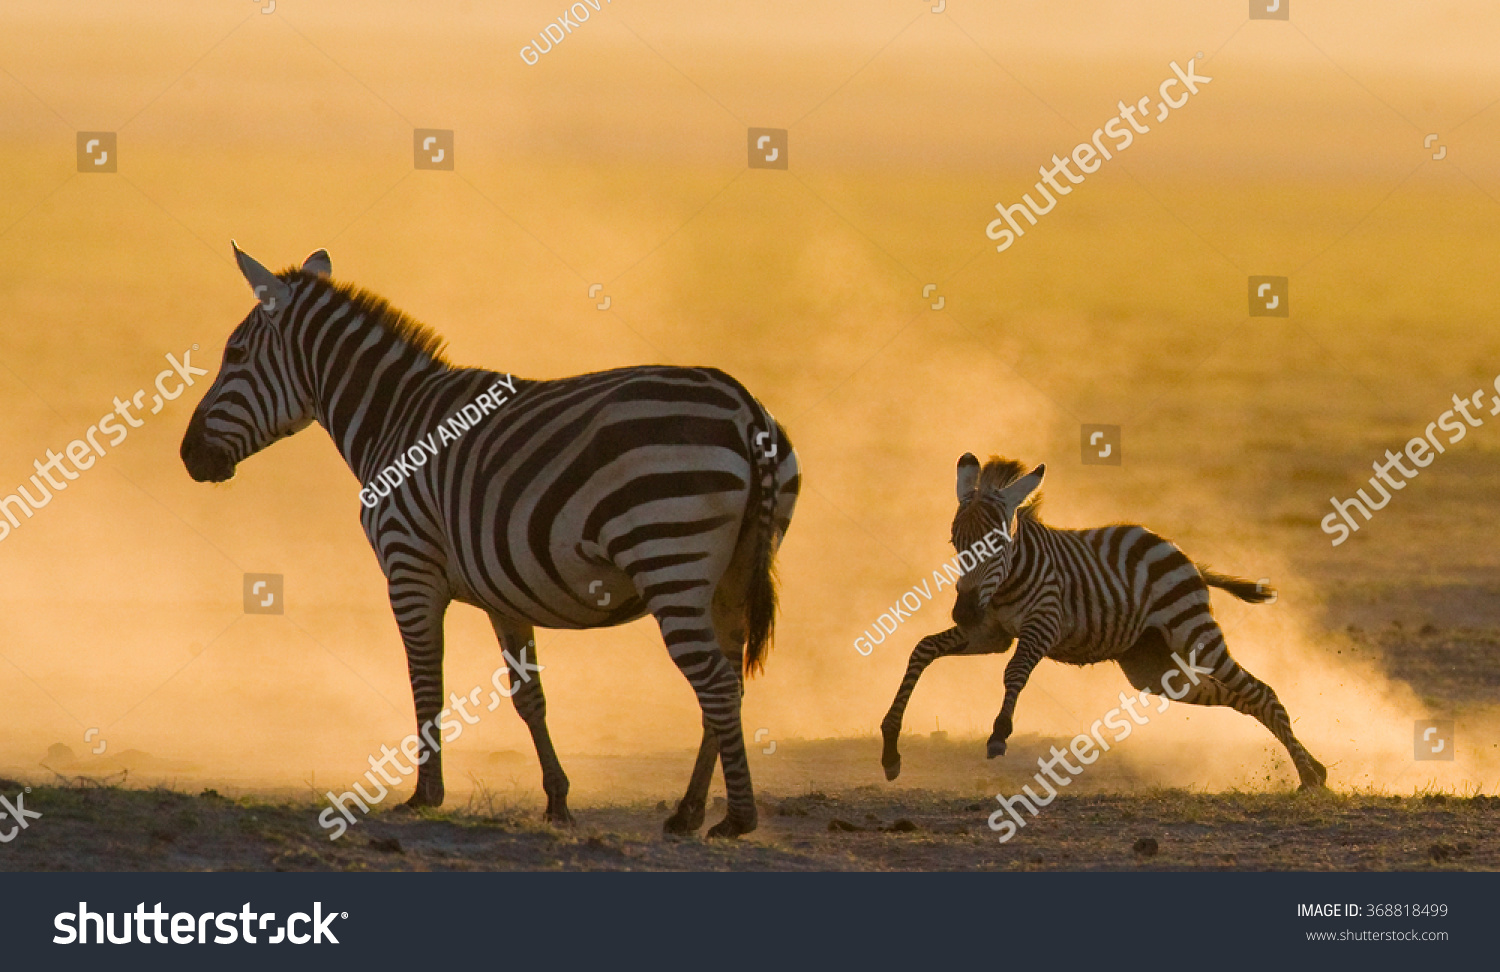 Zebra with a baby in the dust against the setting sun. Kenya. Tanzania. National Park. Serengeti. Maasai Mara. An excellent illustration. #368818499